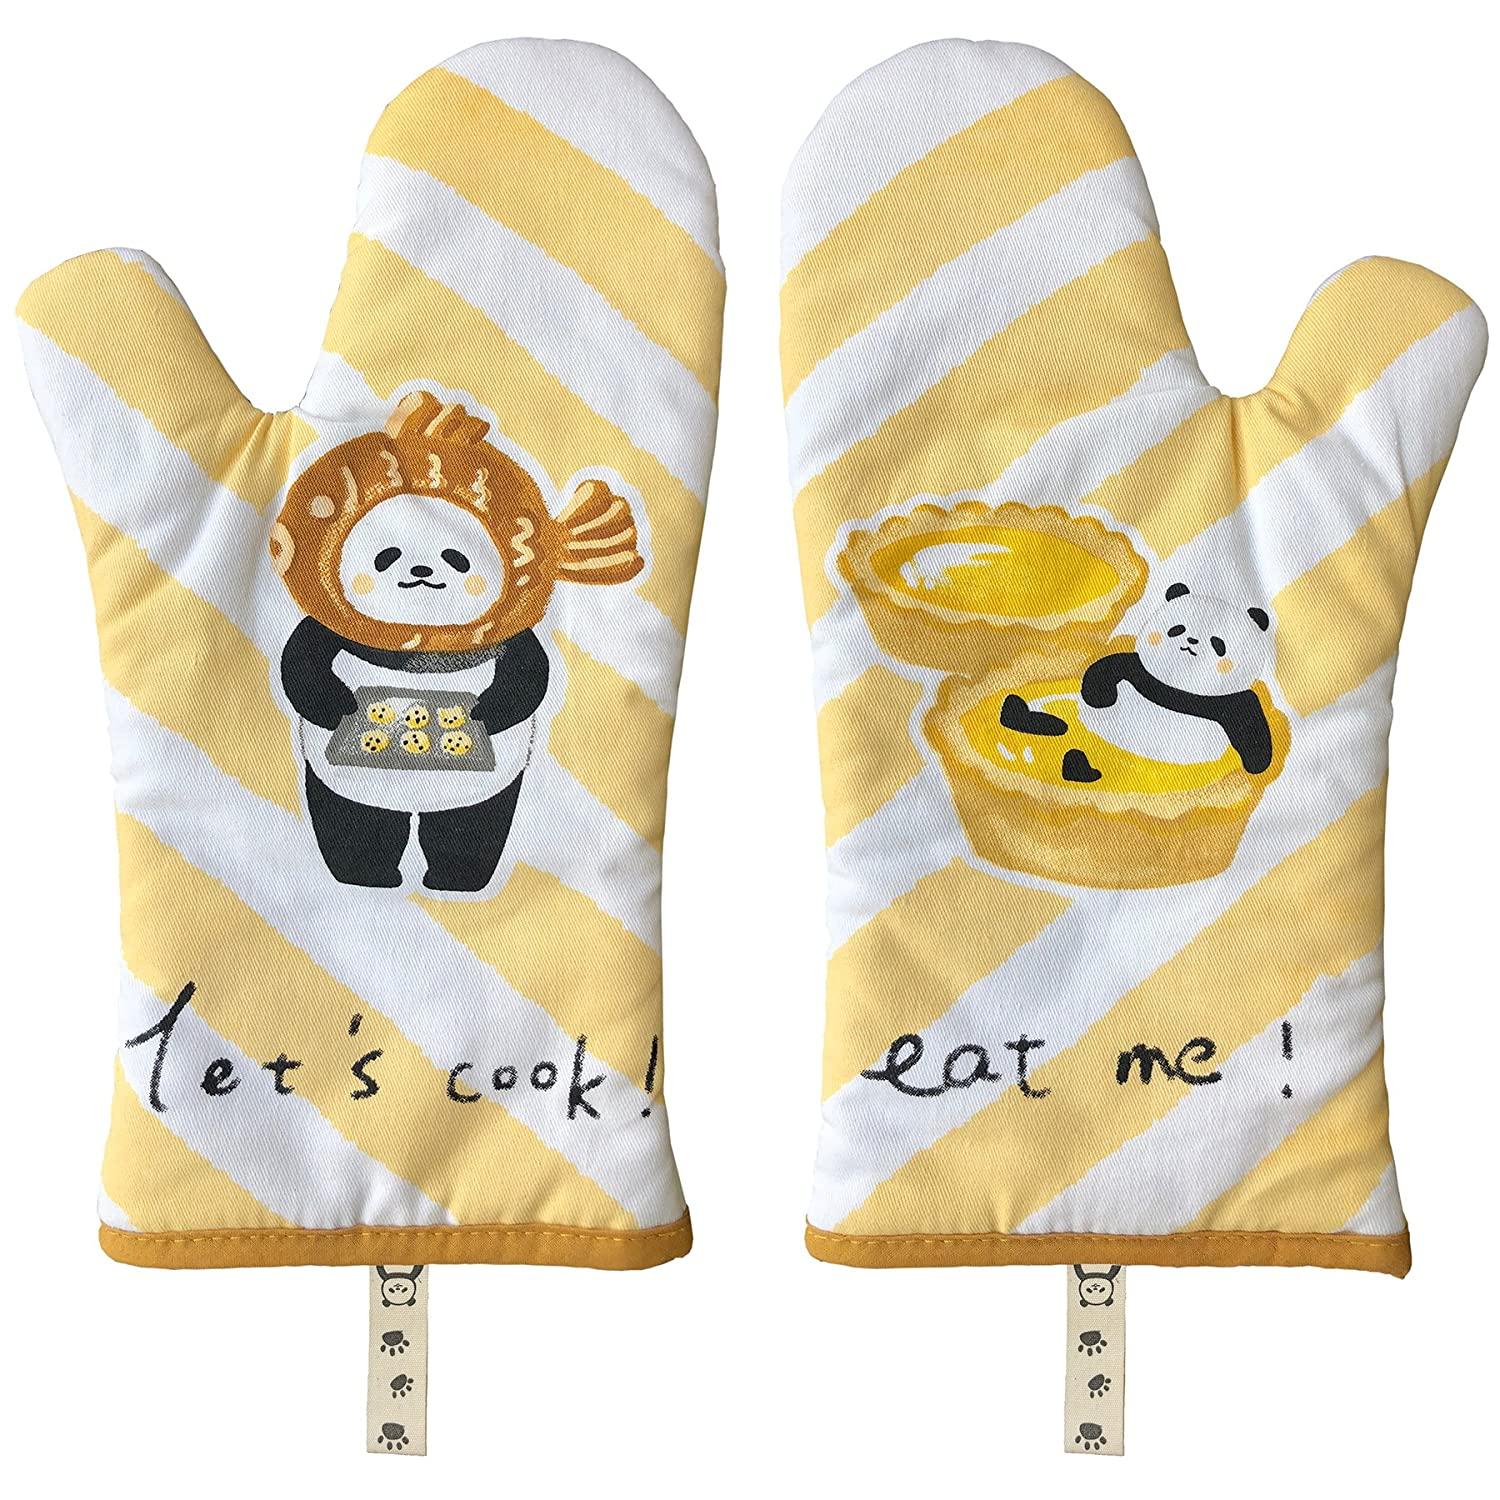 "GREVY Oven Mitts Anti-Heat Kitchen Gloves 12"" Panda Bear Design Set of 2 (Pure Cotton Twill)"